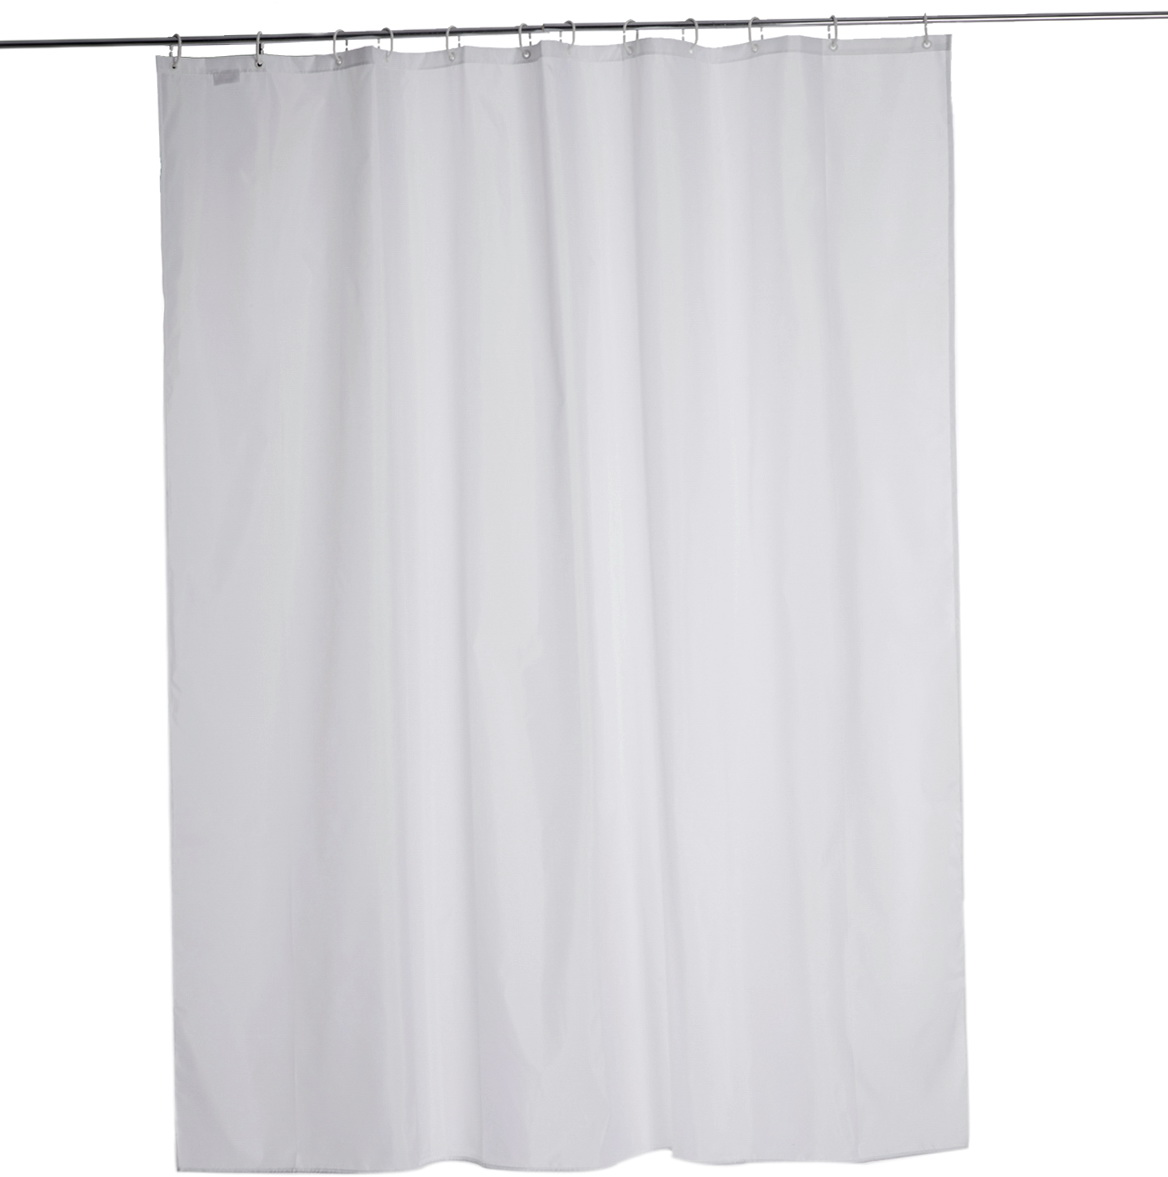 Clean Shower Curtain Rings